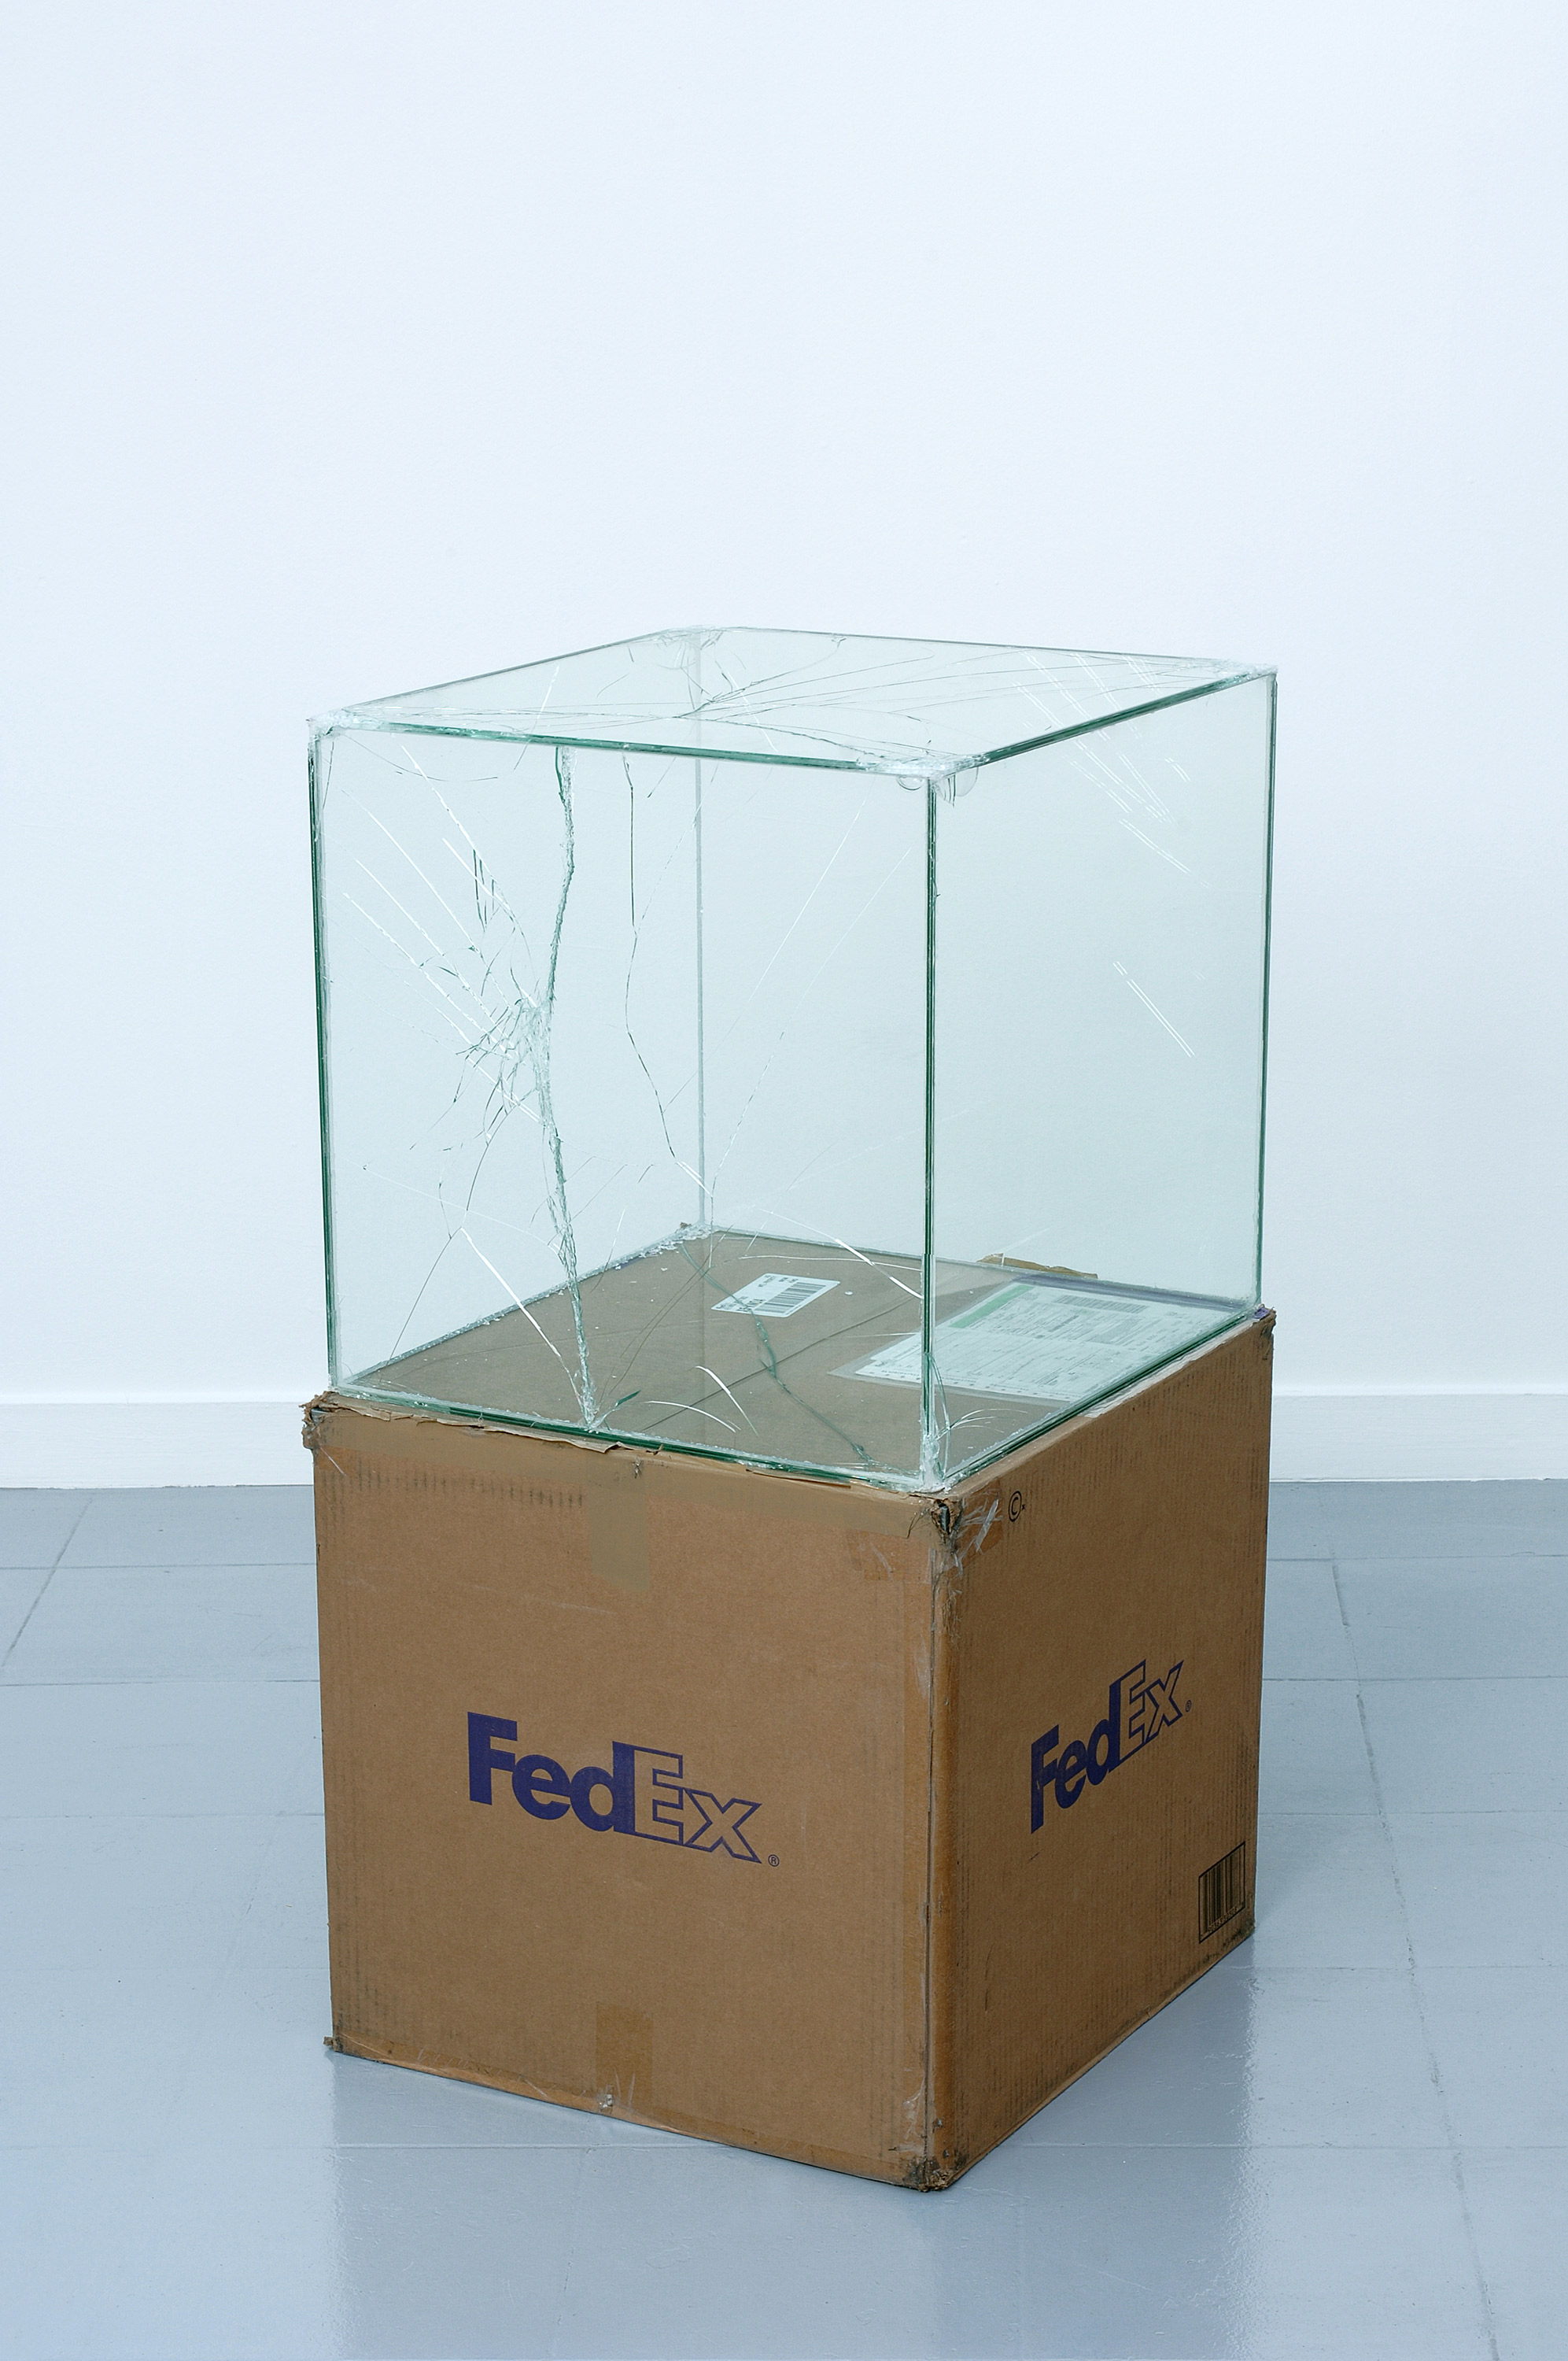 FedEx® Large Kraft Box  © 2005 FEDEX 330508 REV 10/05 SSCC, International Priority, Los Angeles–Brussels trk#865282057975, October 27–30, 2008, International Priority, Brussels–Los Angeles trk#866071746396, December 8–9, 2008, Standard Overnight, Los Angeles–New York trk#774901659423, November 4–5, 2015, Standard Overnight, New York–Los Angeles trk#775241449093, December 21–22, 2015    2008–   Laminated glass, FedEx shipping box, accrued FedEx shipping and tracking labels, silicone, metal, and tape  20 x 20 x 20 inches   FedEx Glass Works, 2007–